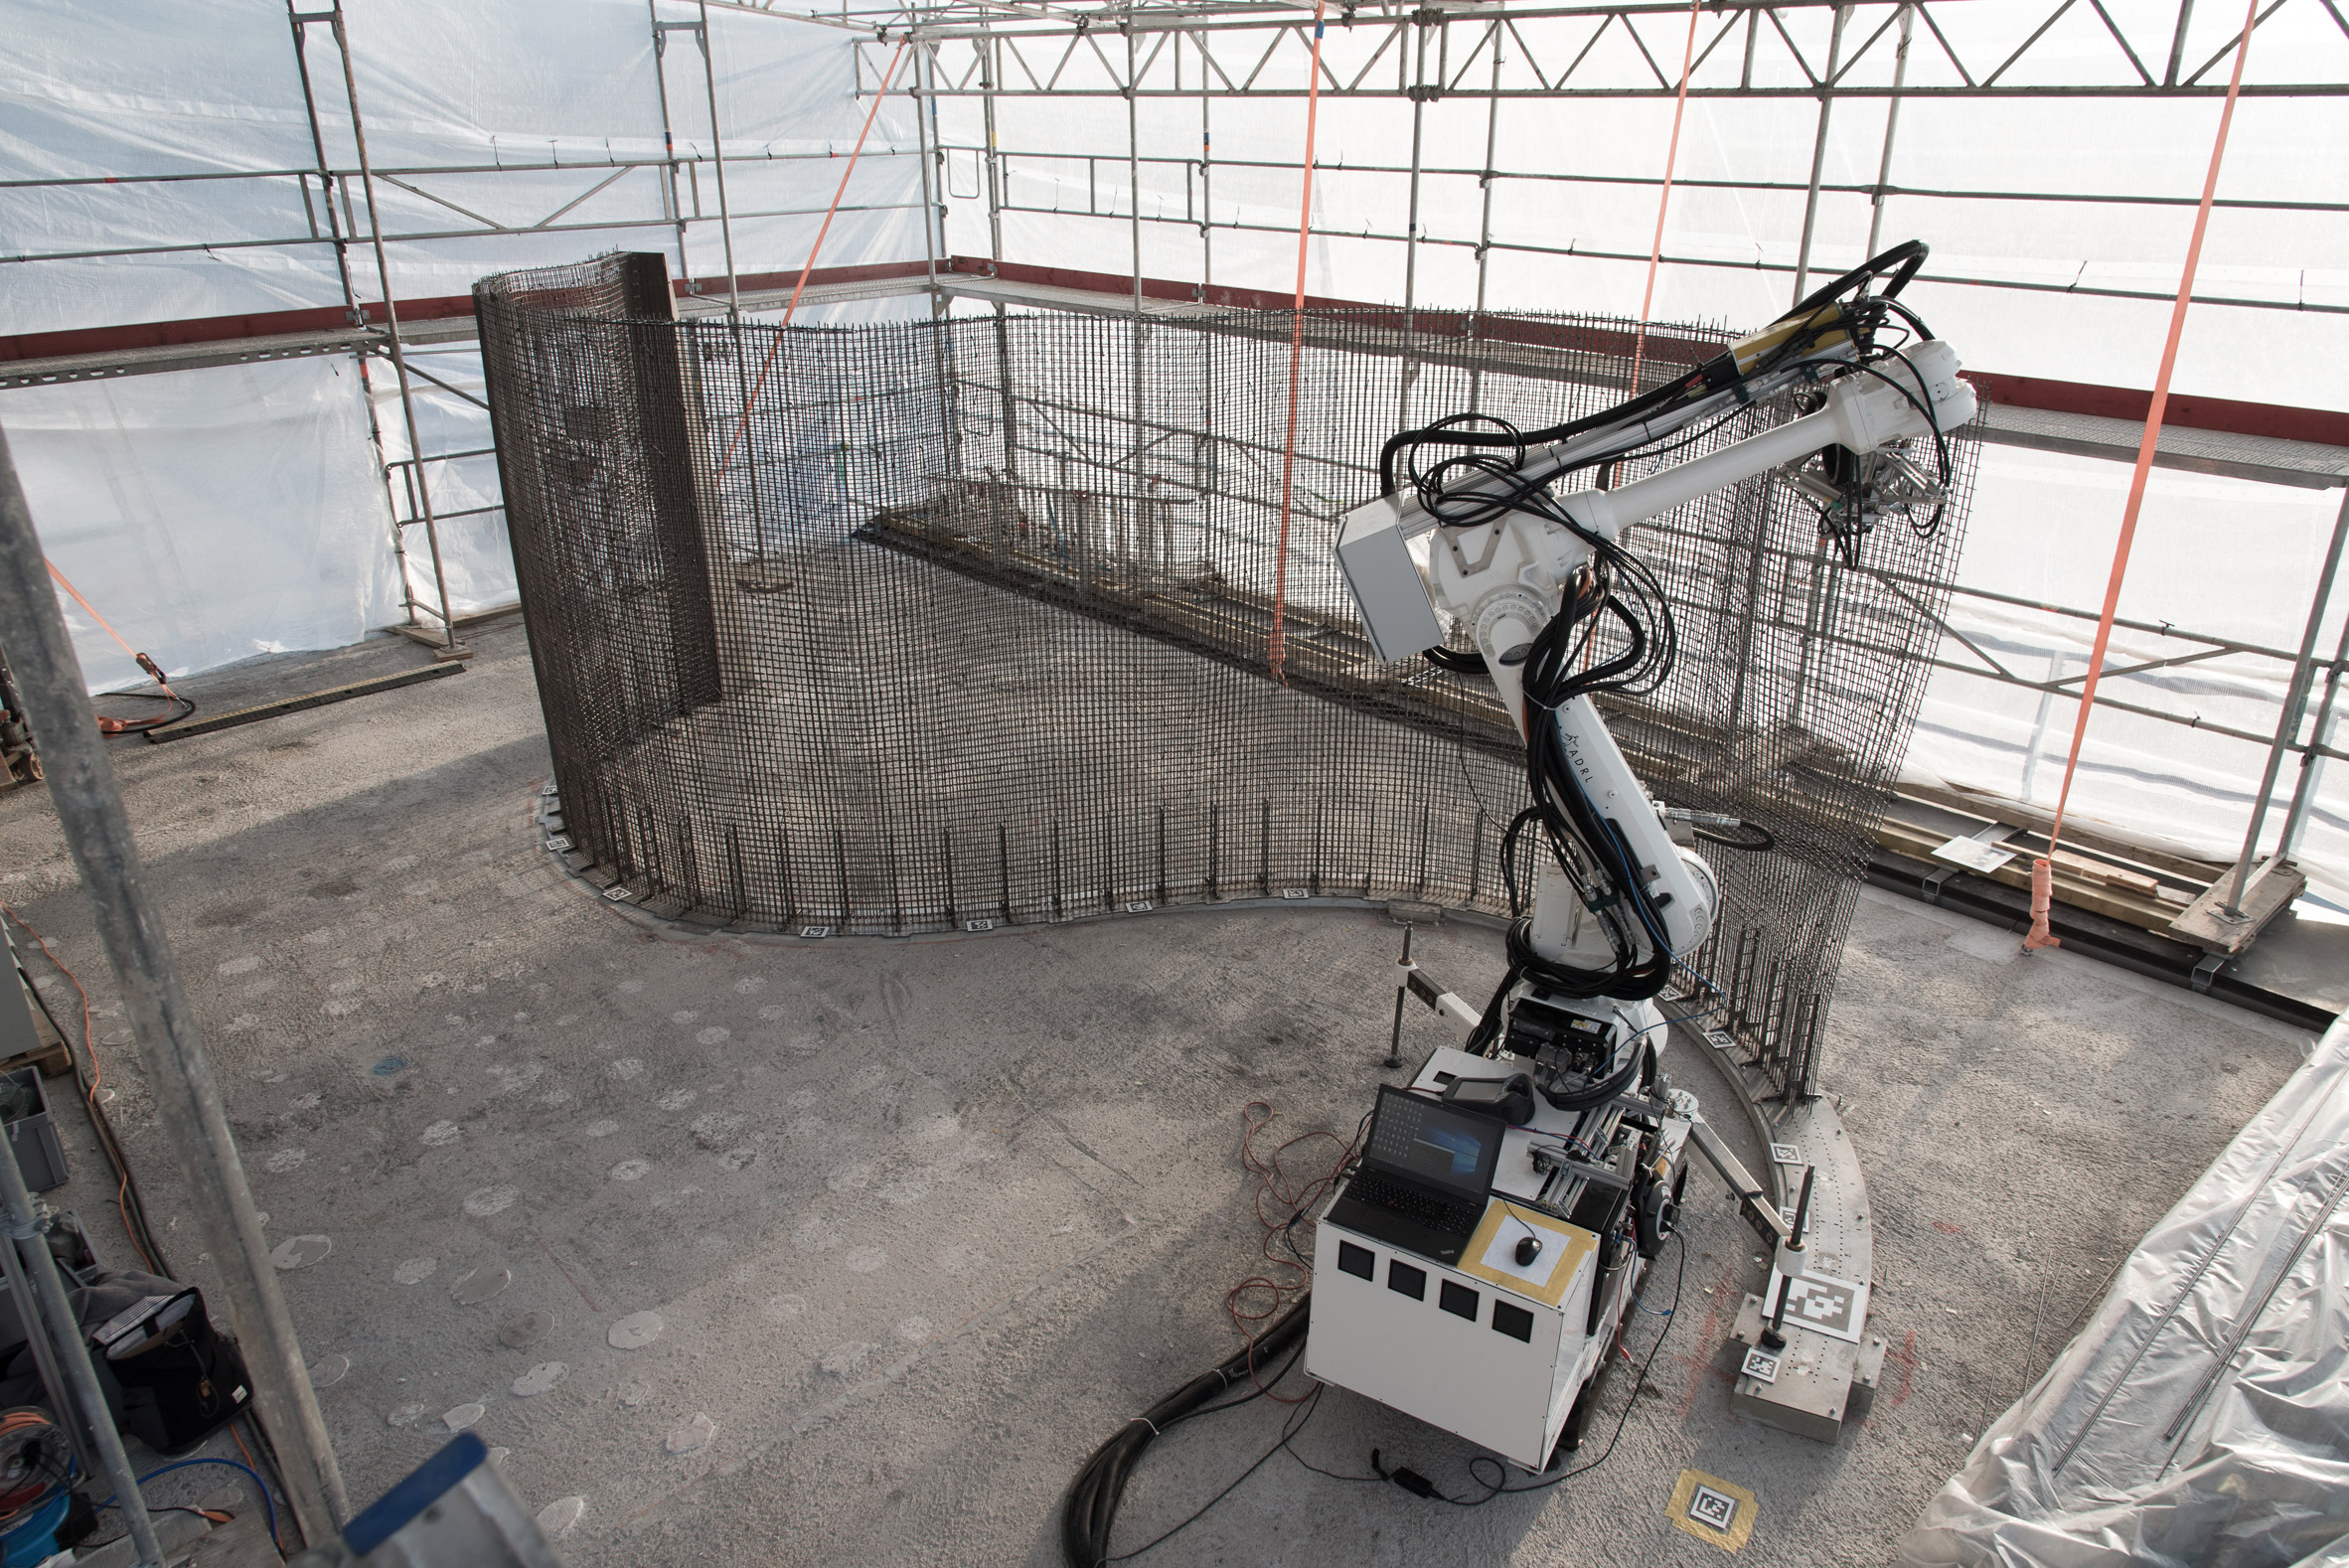 Researchers are using 3D printing and robots to design plan and